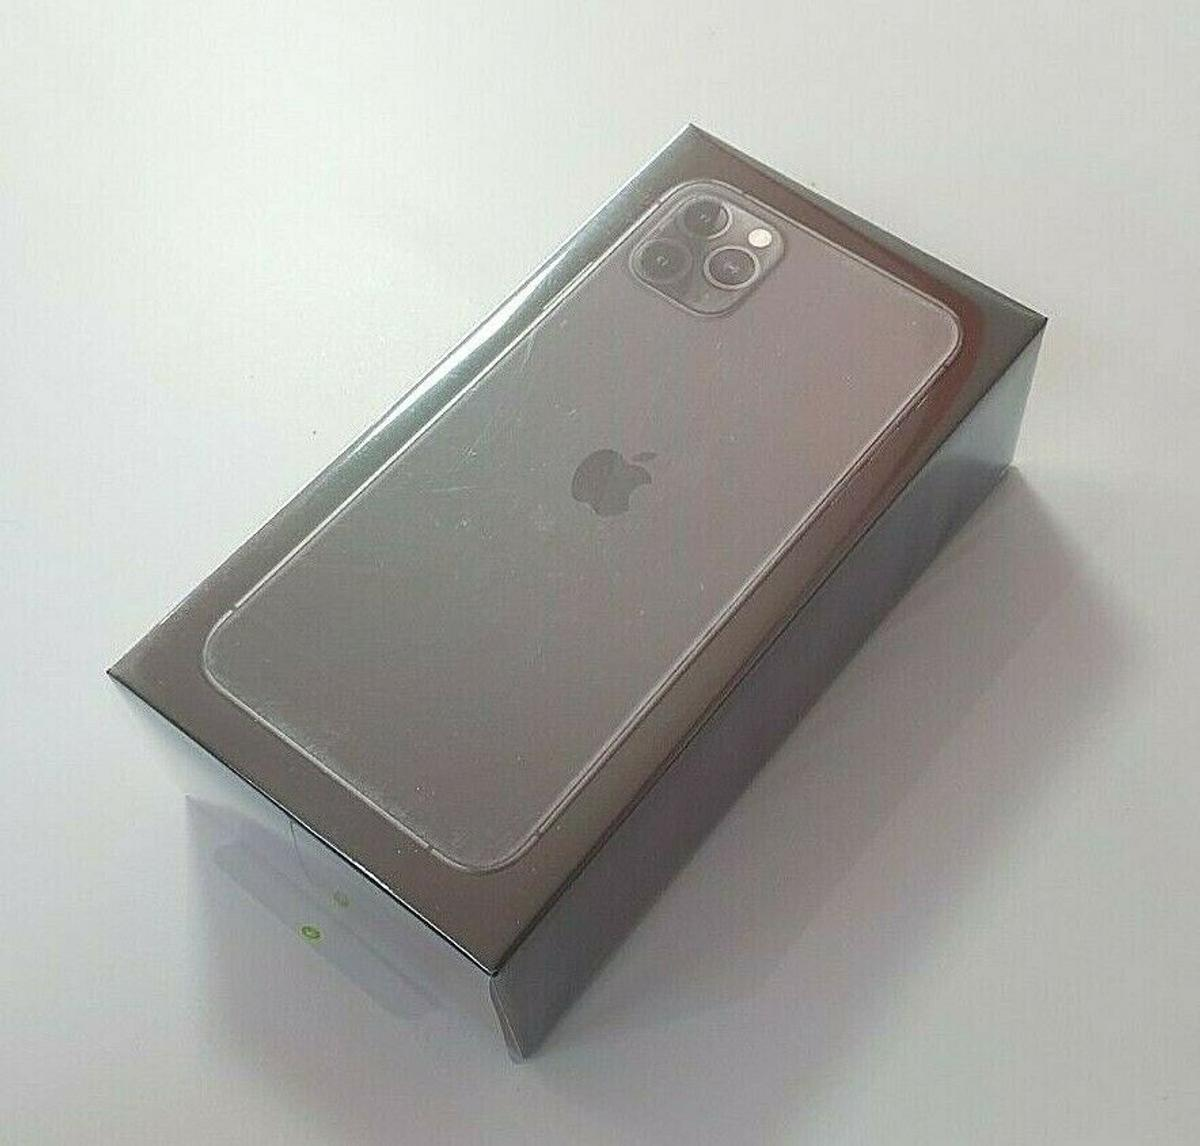 Space Grey Iphone 11 Pro Max And Airpods In Ne23 Cramlington For 750 00 For Sale Shpock